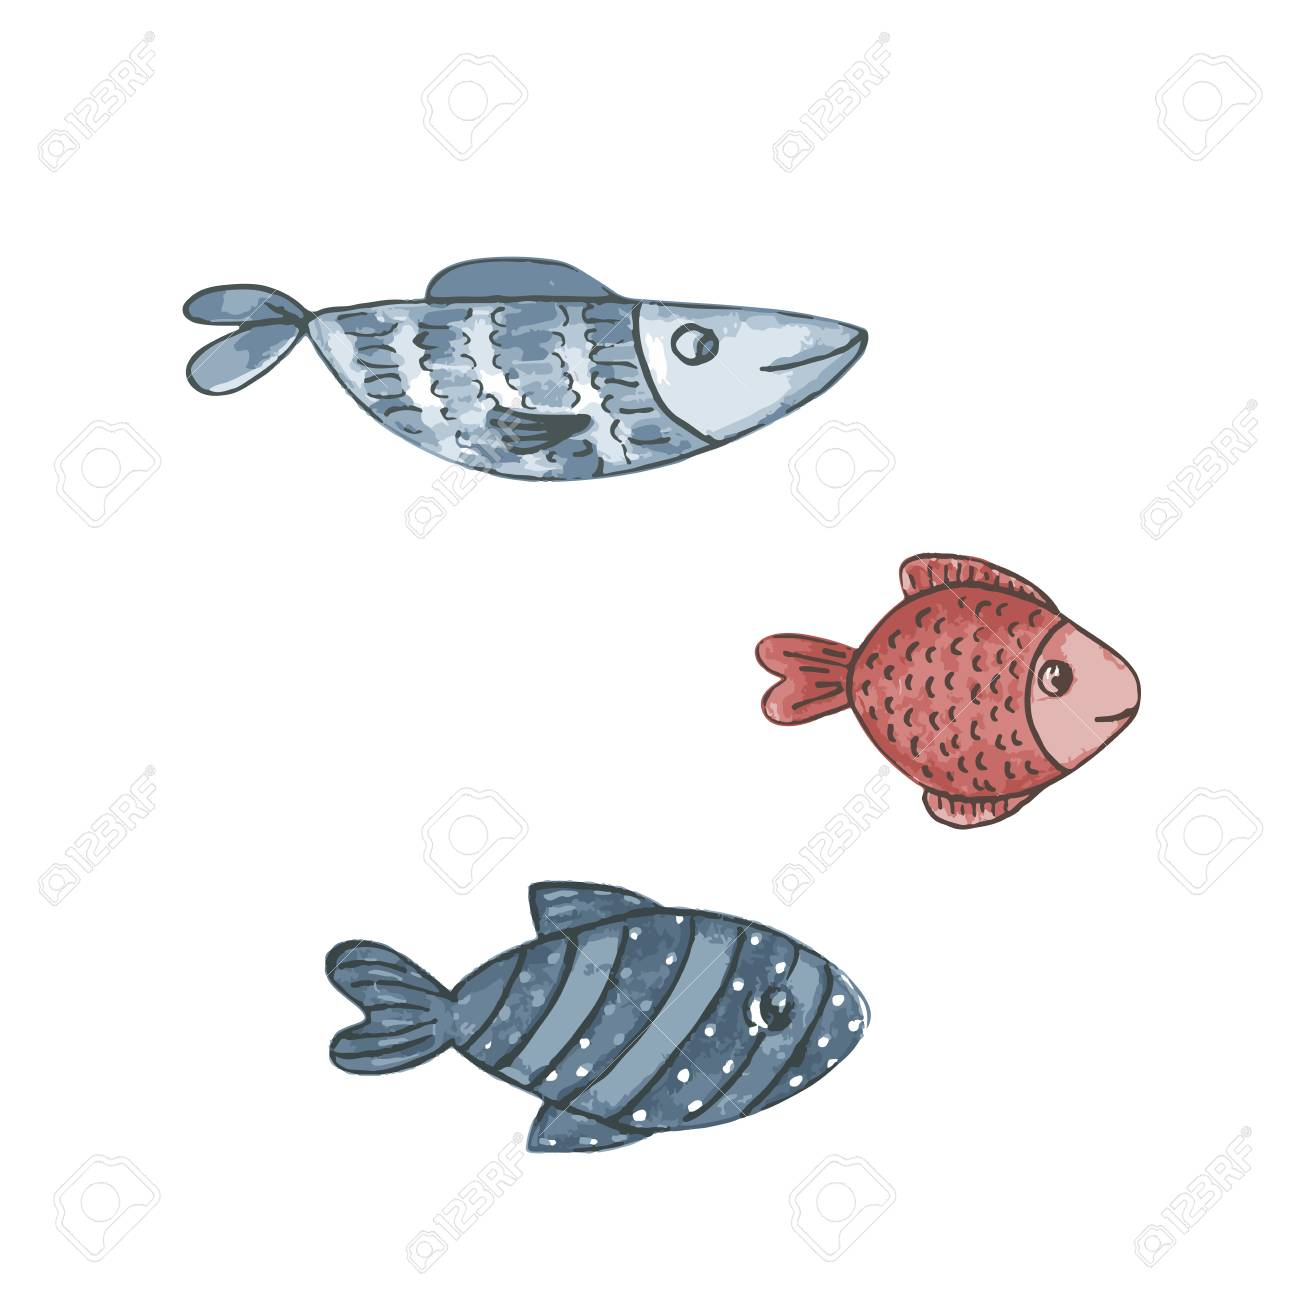 Watercolor fishes set collection of watercolor hand draw fish isolate on white background cute